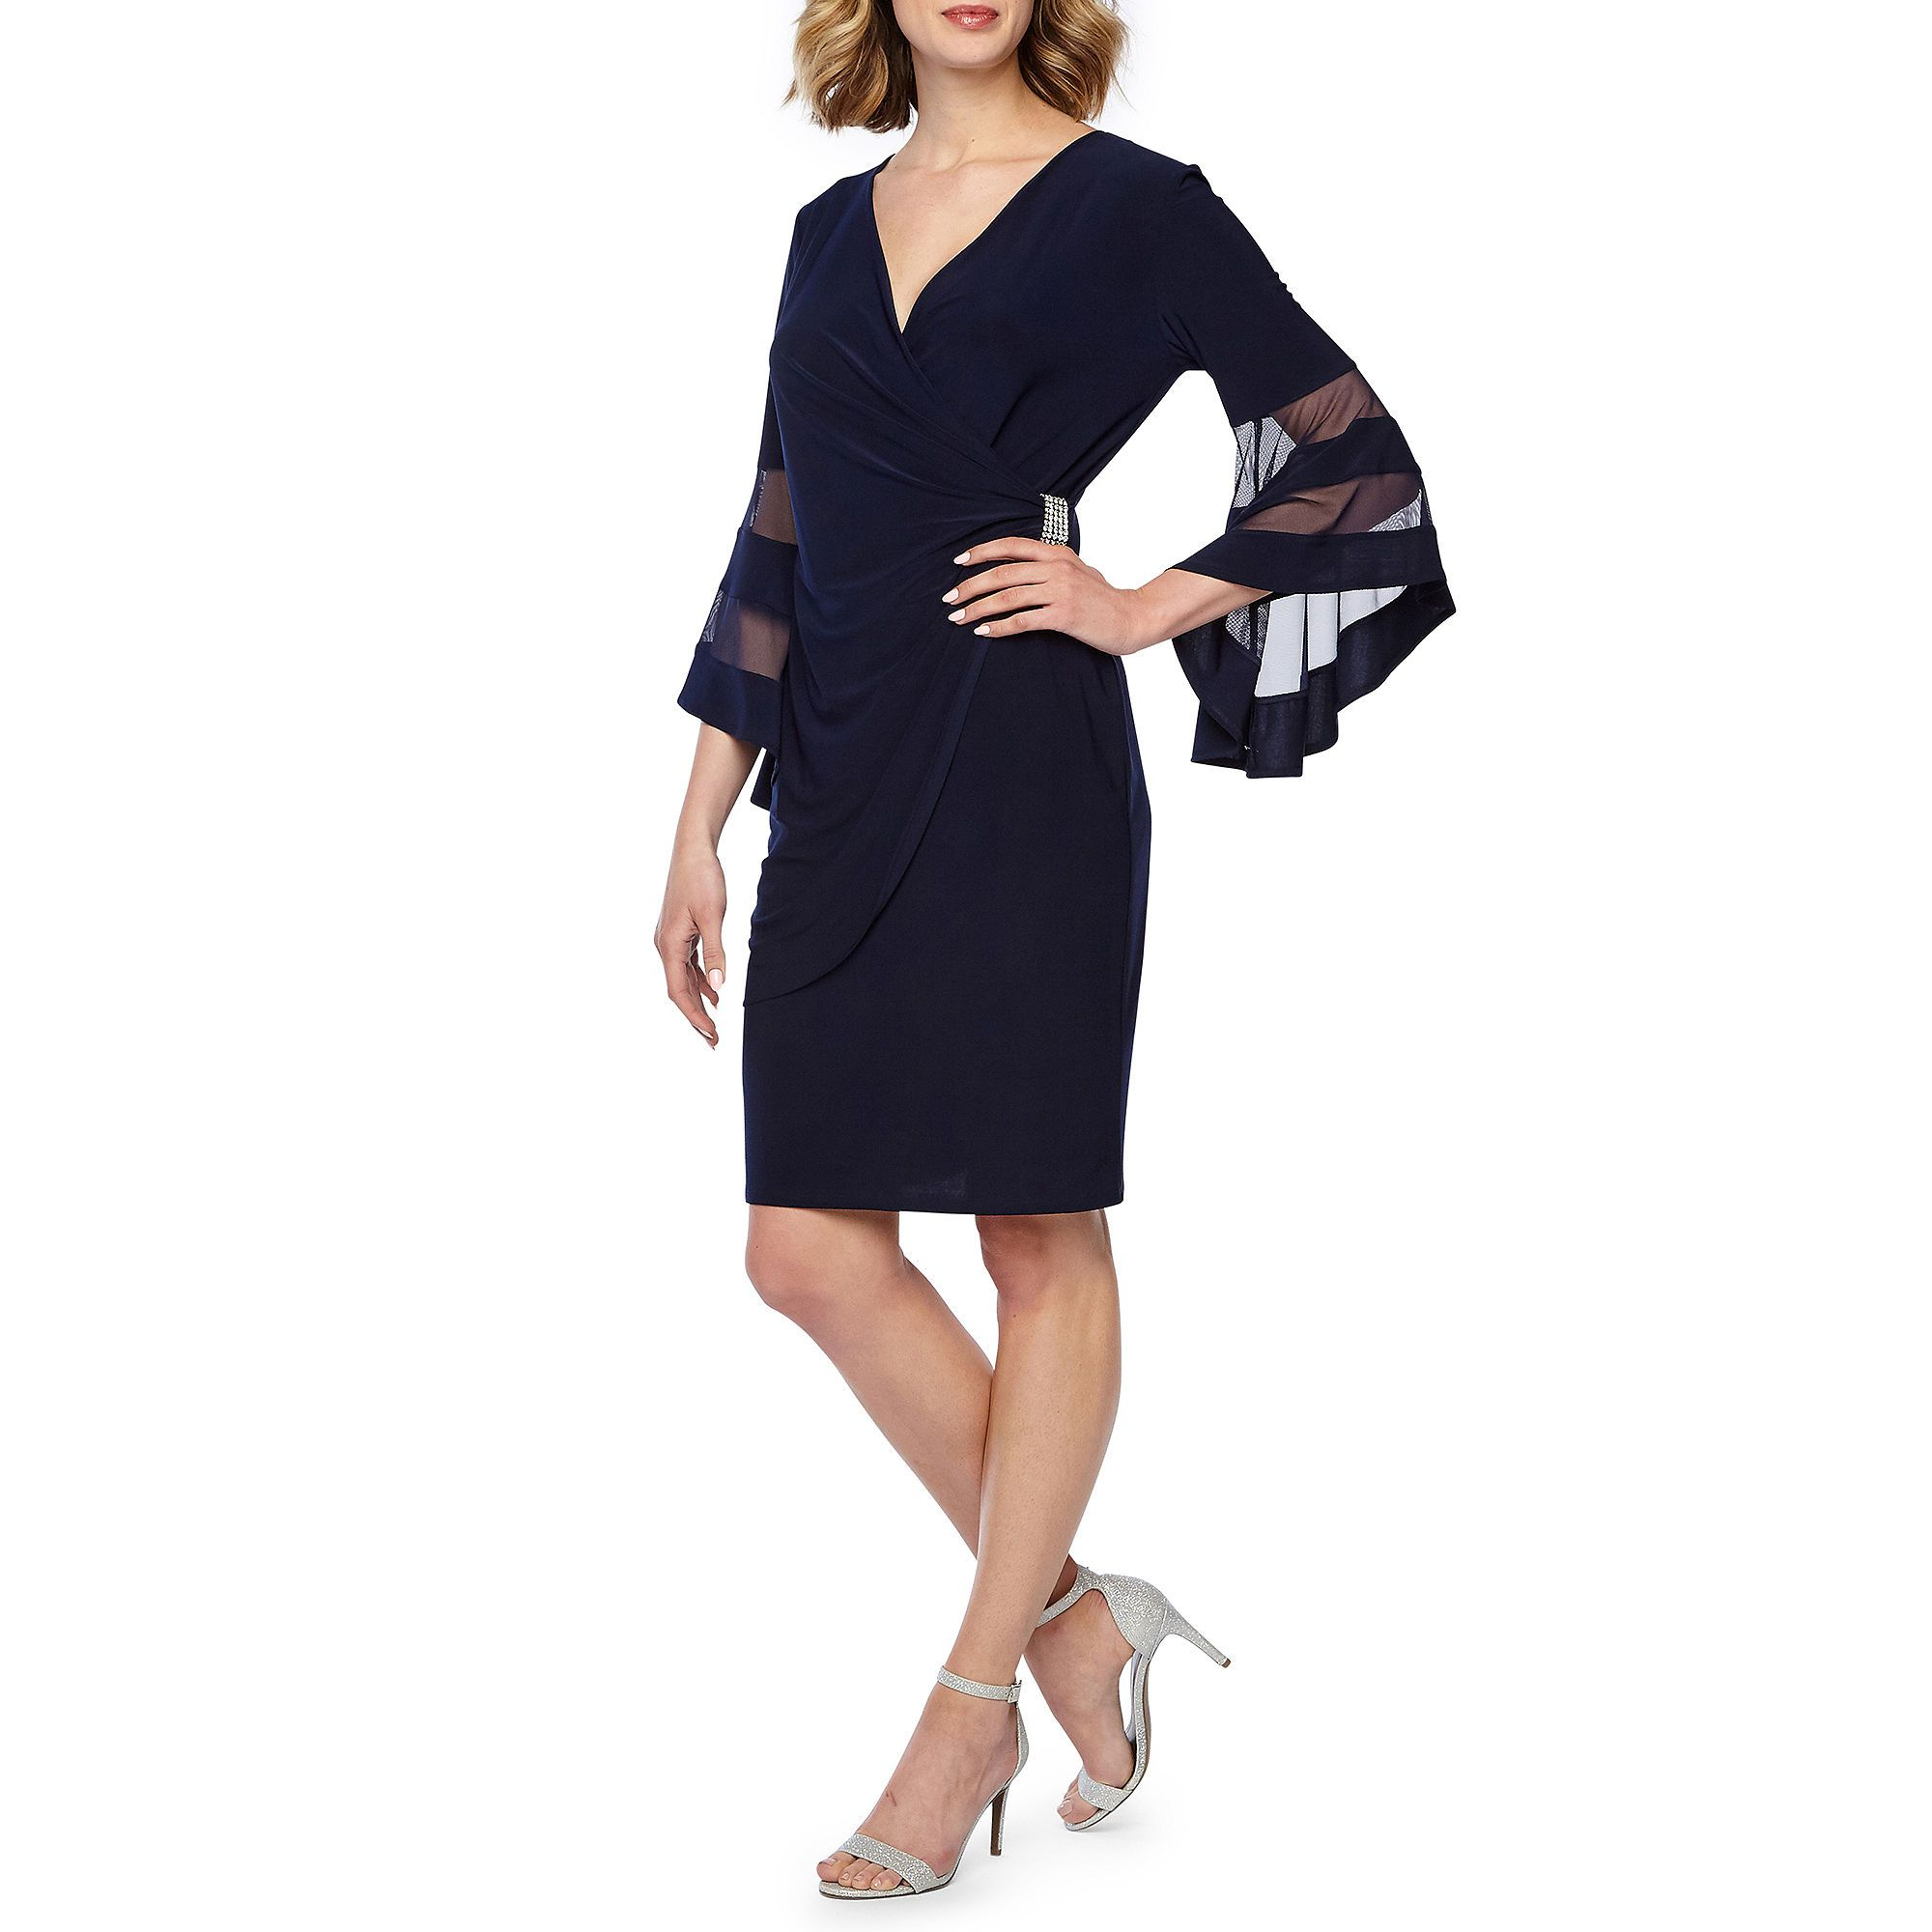 R M Richards 3 4 Bell Sleeve Fit Flare Dress Jcpenney Fit Flare Dress Flare Dress Bell Sleeves [ 2000 x 2000 Pixel ]